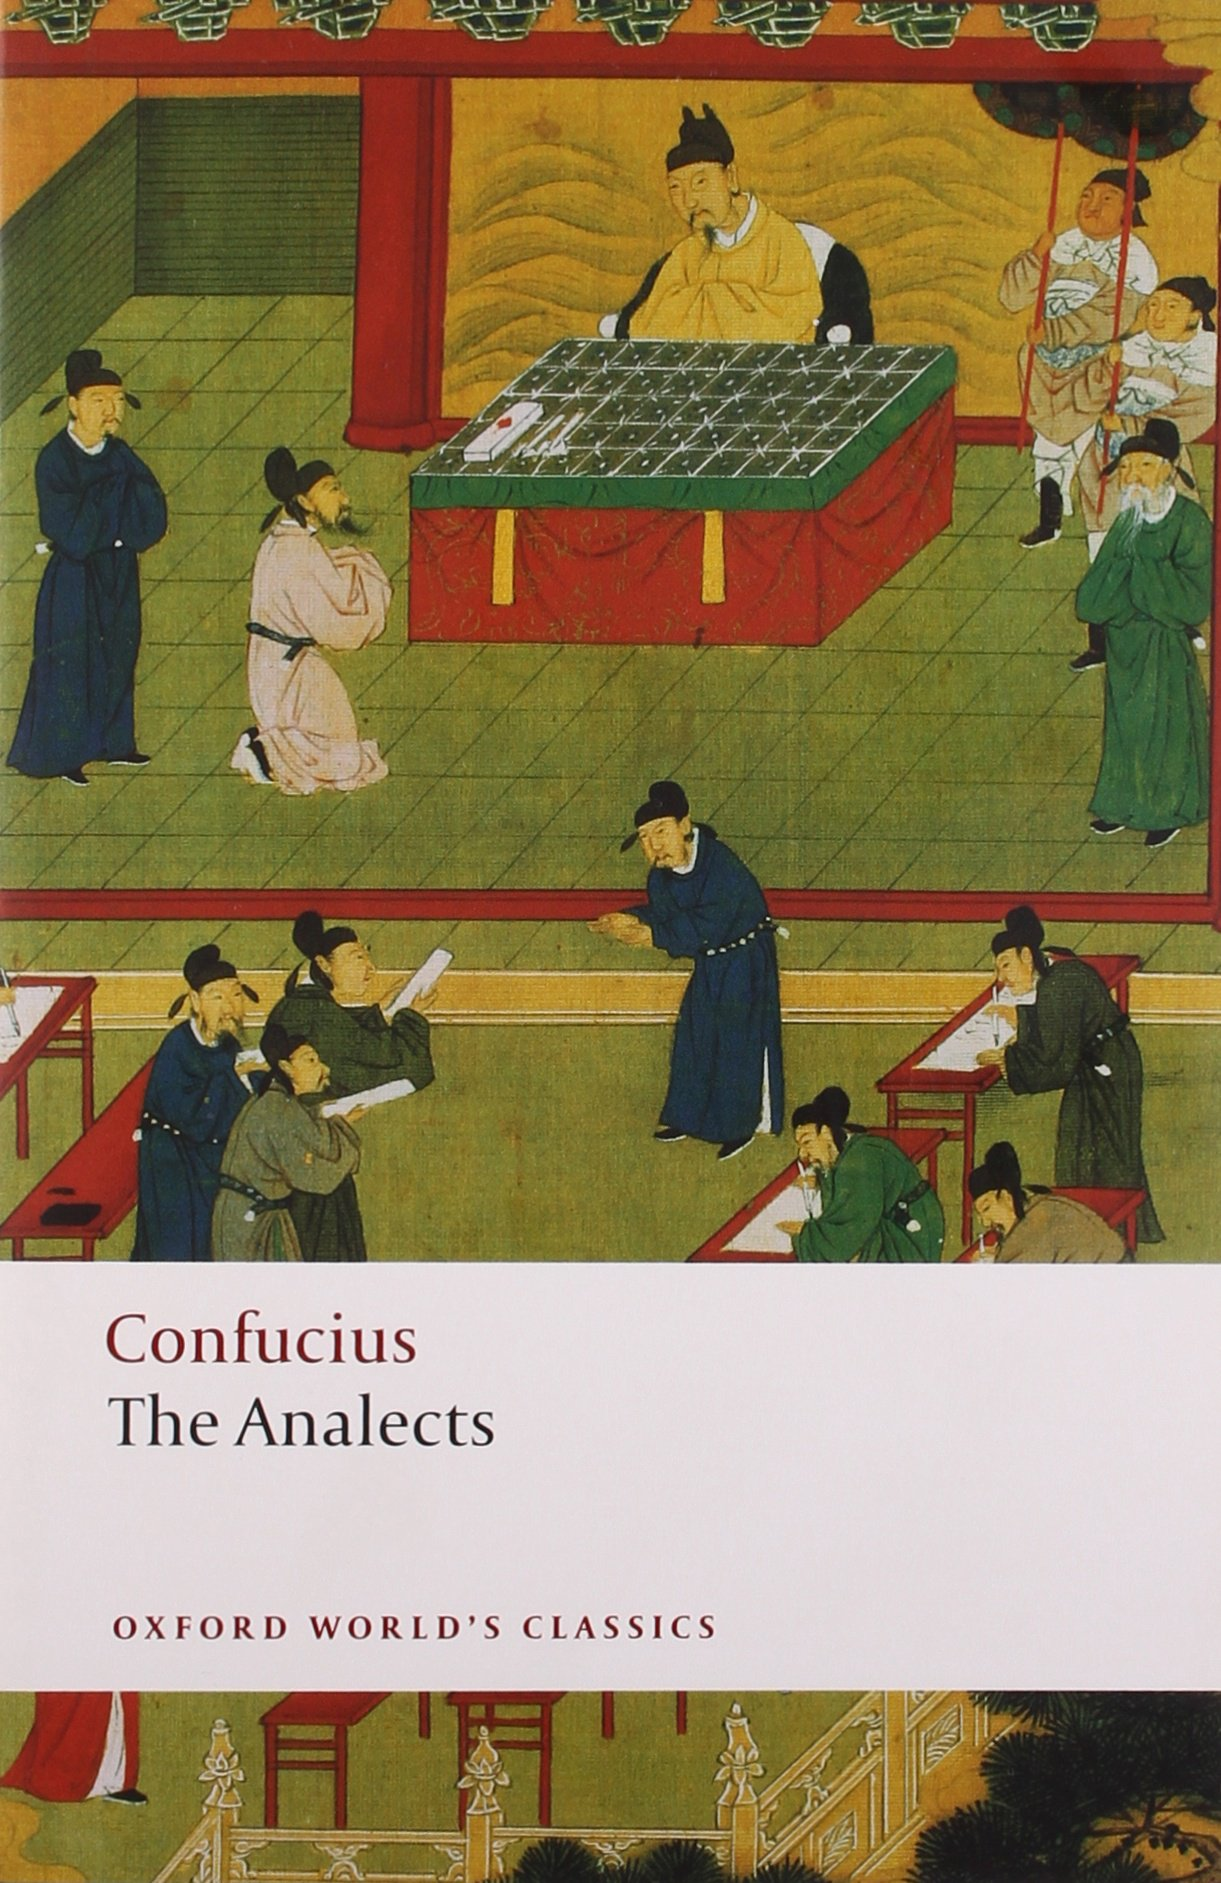 Amazon.com: The Analects (Oxford World's Classics) (9780199540617):  Confucius, Raymond Dawson: Books